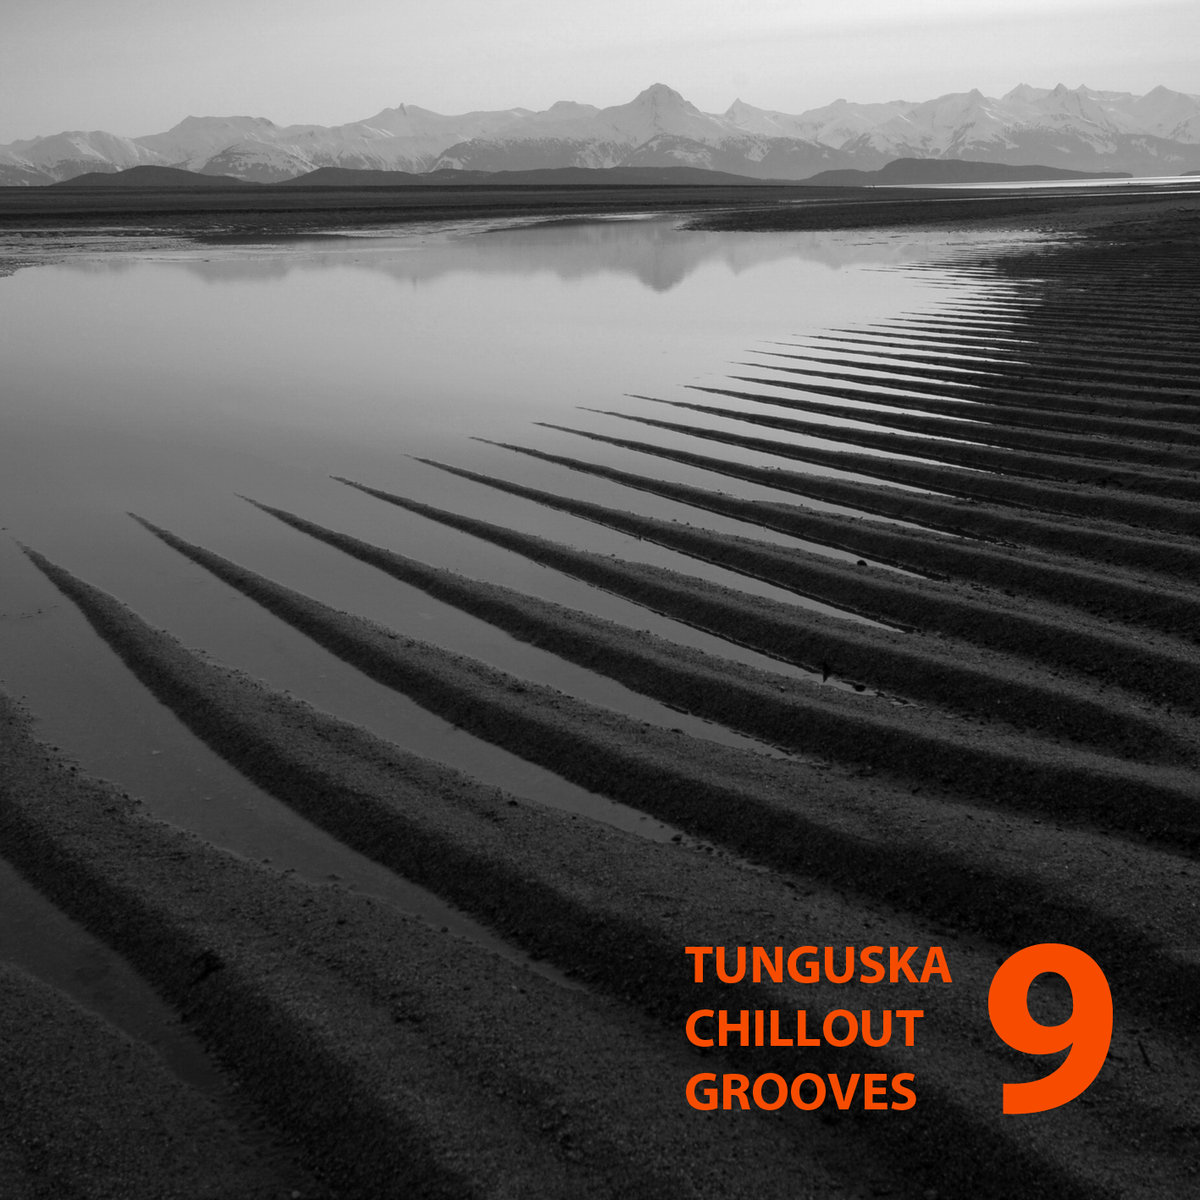 Factory Of Souls - Rain (Original Mix 2013) @ 'Tunguska Chillout Grooves - Volume 9' album (electronic, ambient)